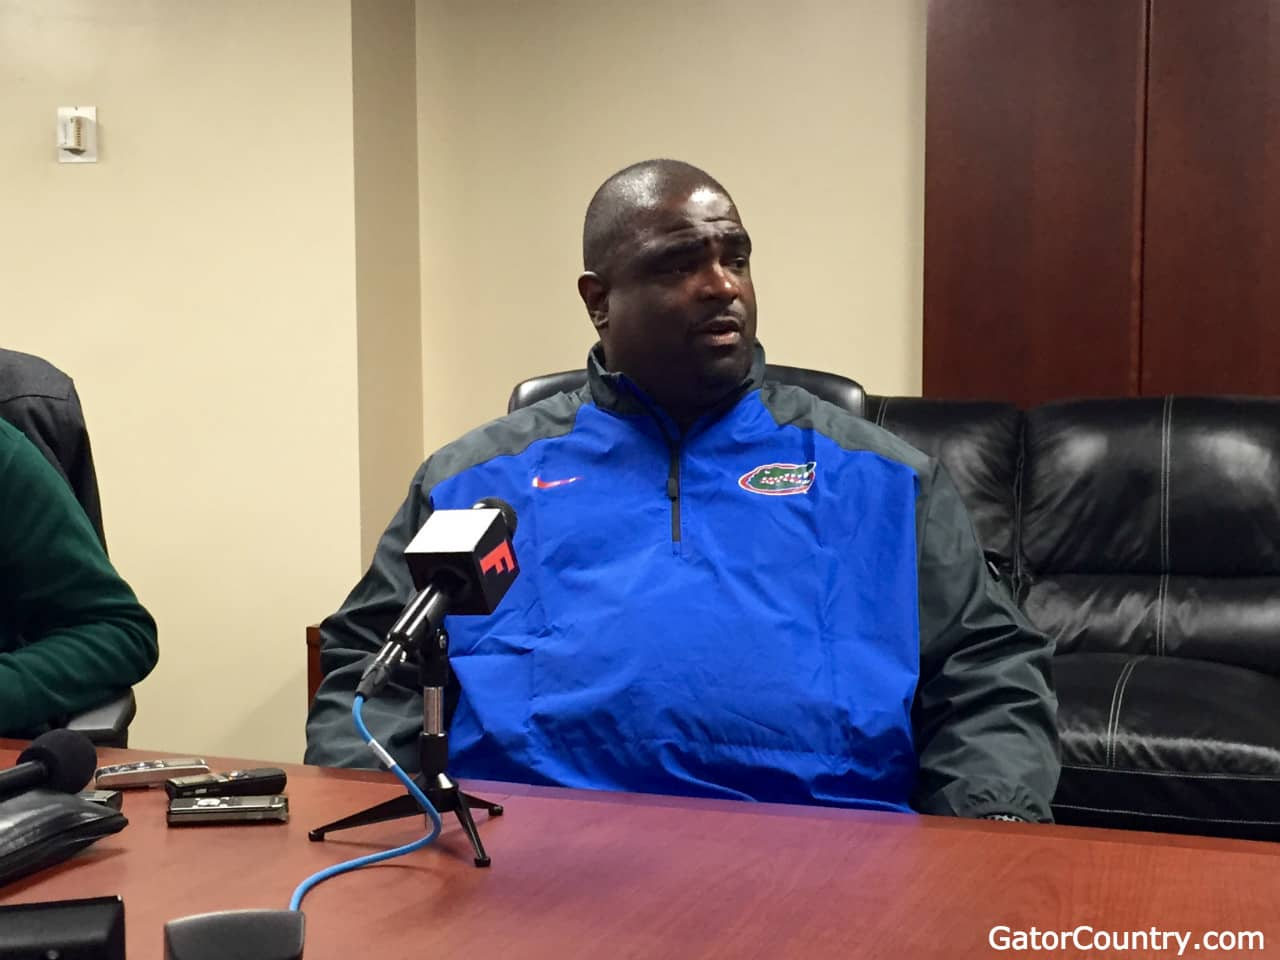 The Florida Gators offer Ancrum on Monday